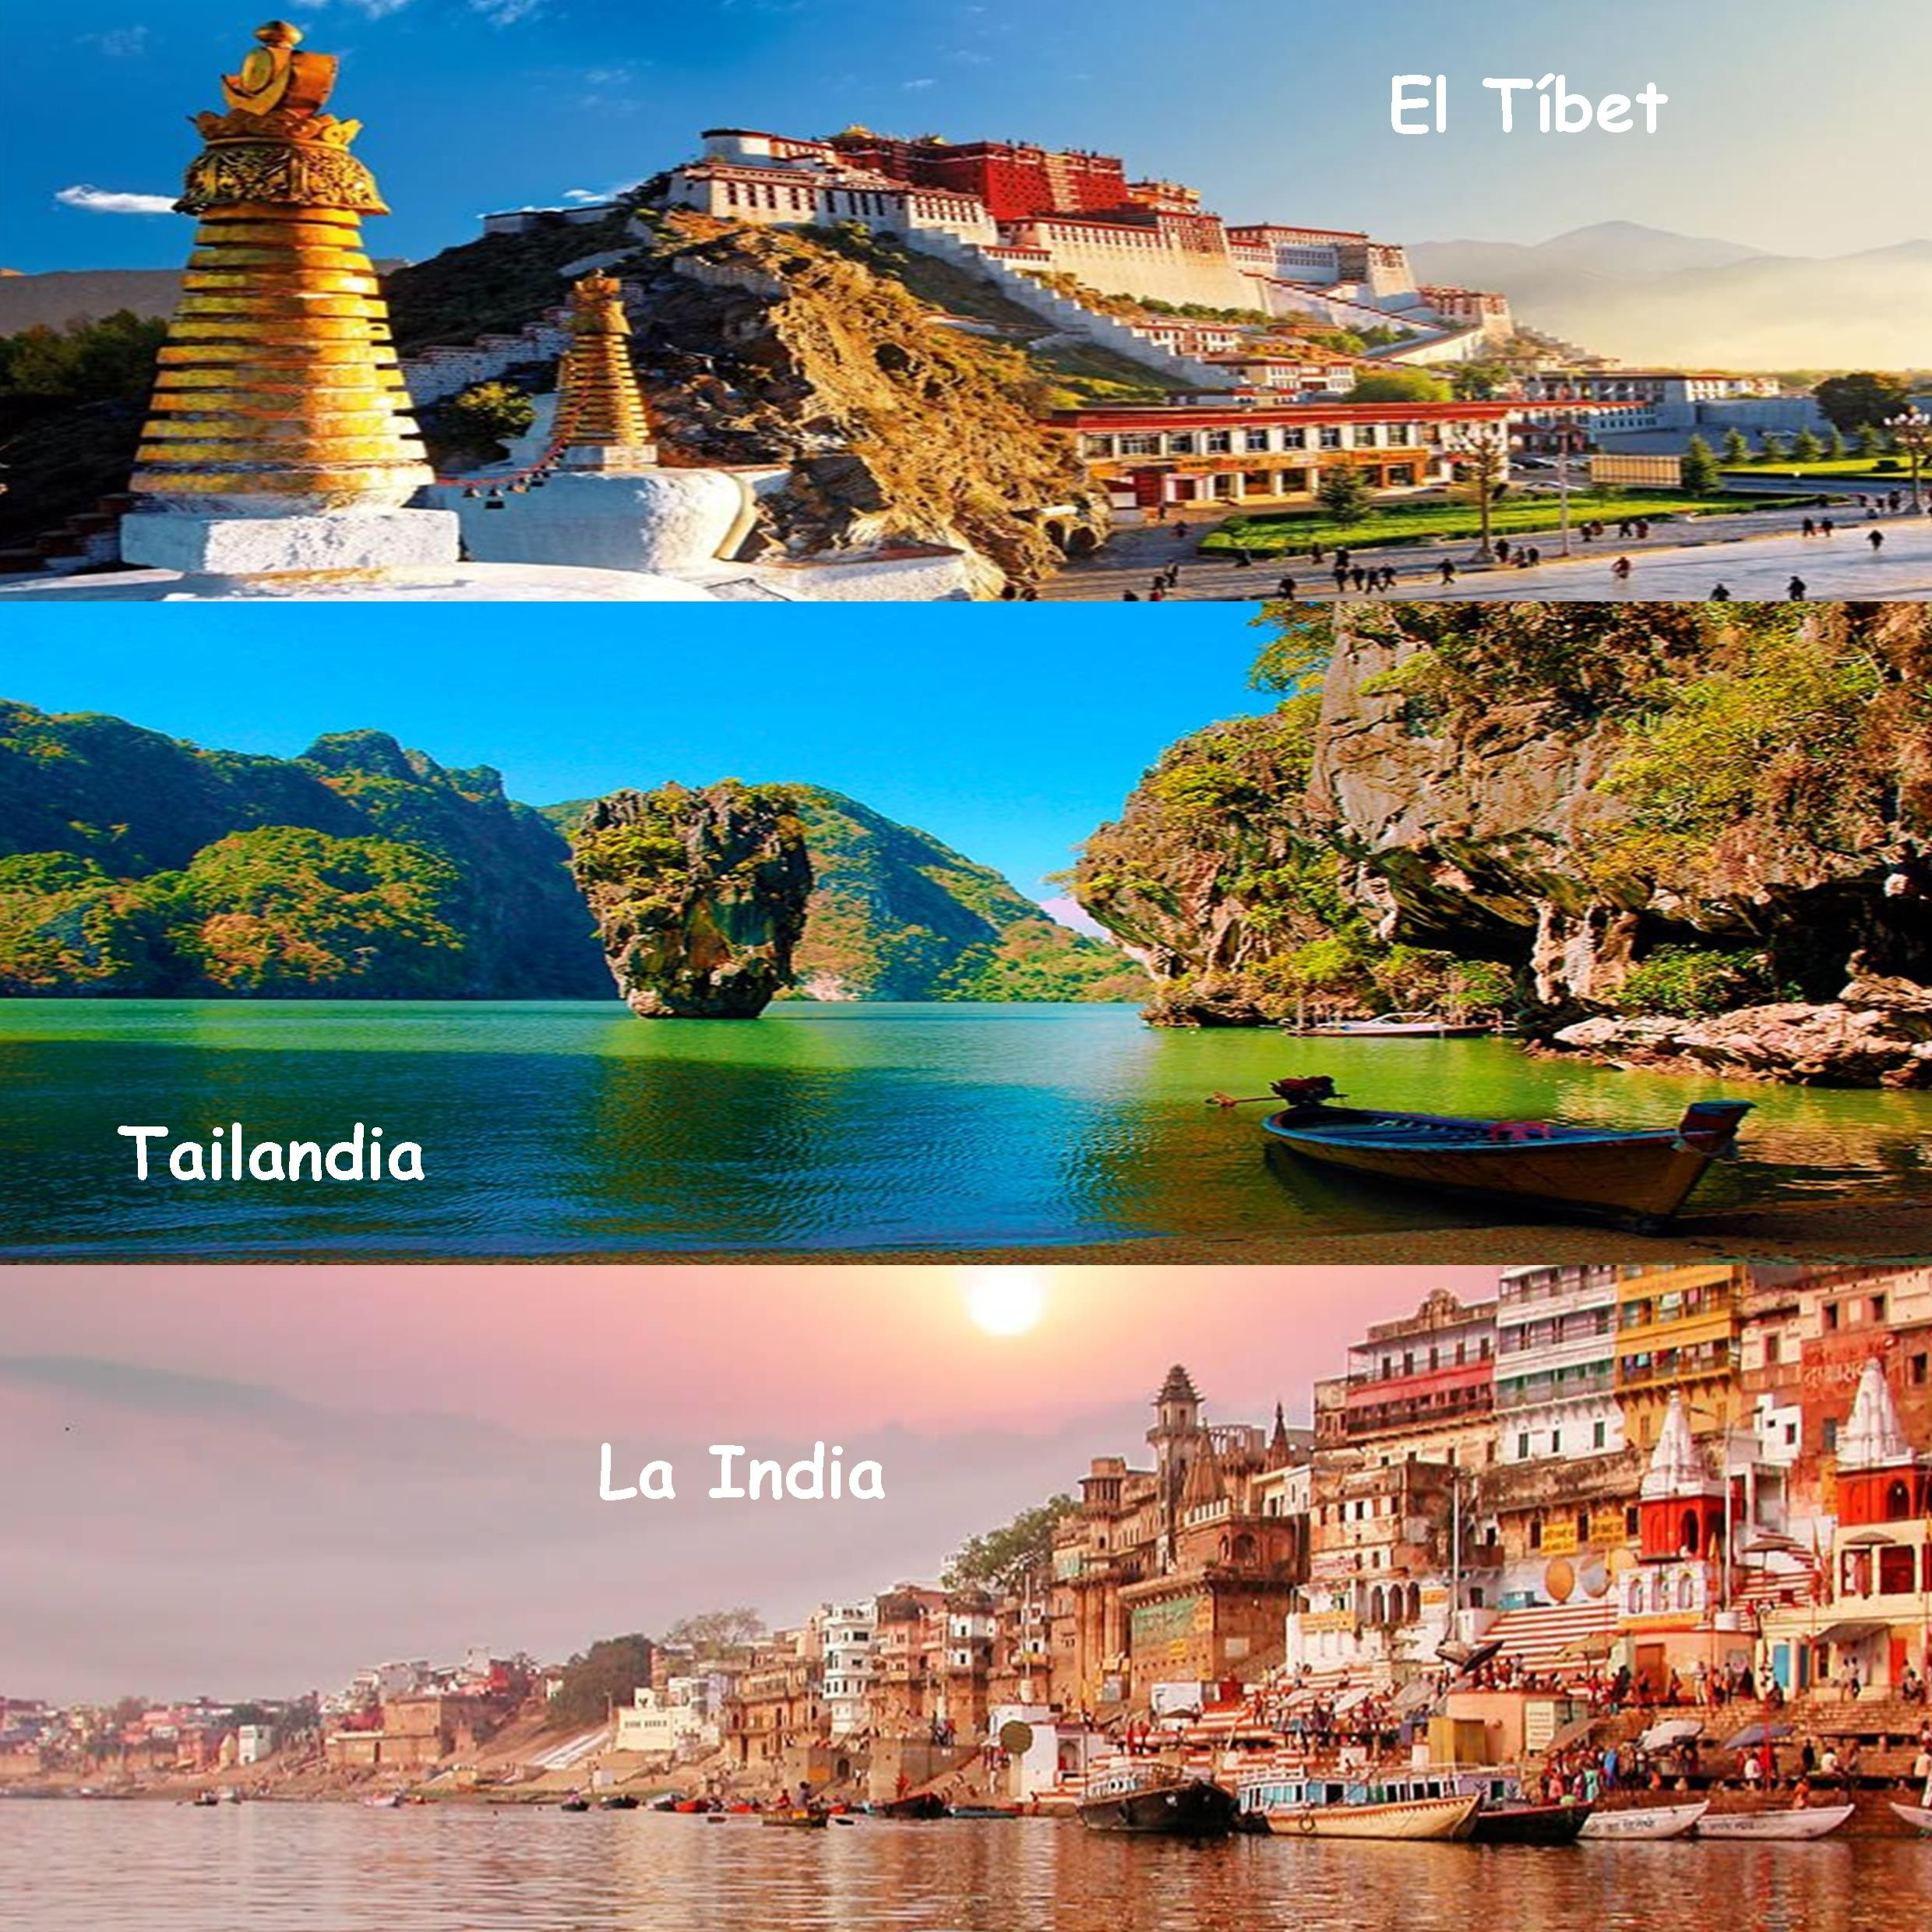 ASIA. www.promesasdeloriente.com  ¿A cuál de estos tres destinos te gustaría viajar? El Tíbet, Tailandia o La India www.promesasdeloriente.com   Which of these three countries would you most likes to visit?  Tibet, Thailand or India?